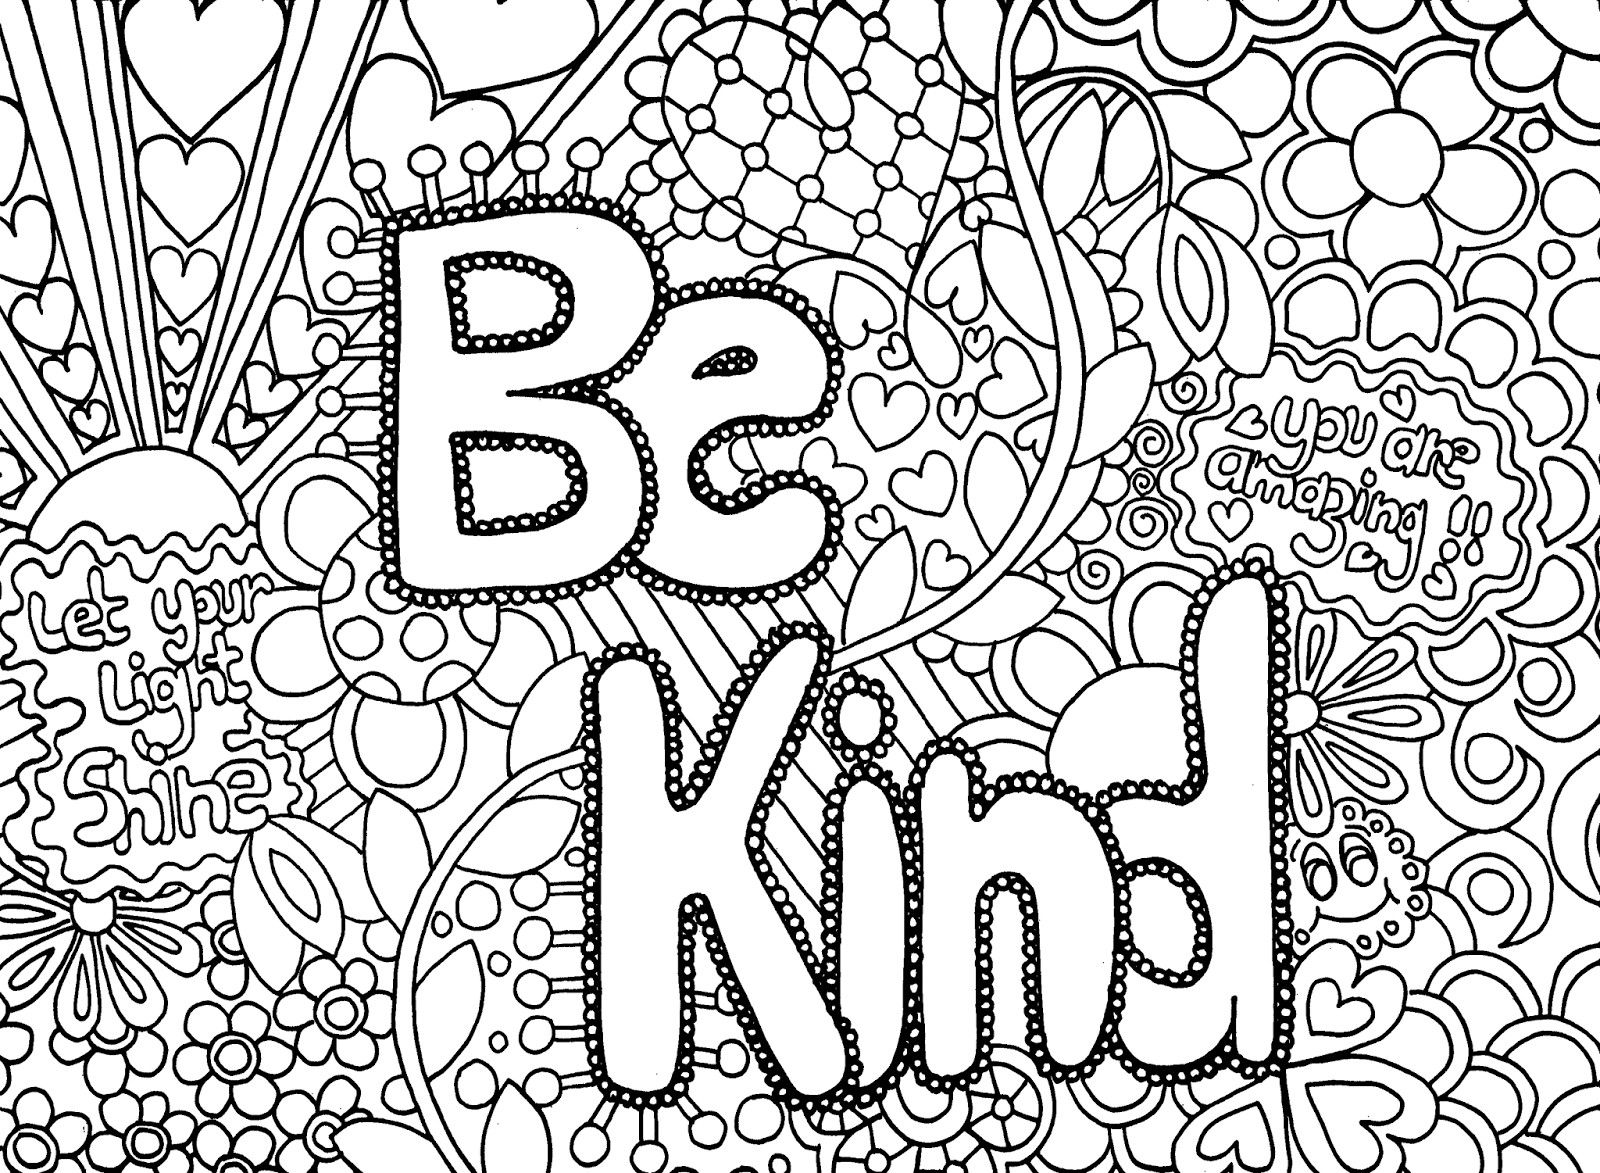 Visit Coloring Pages Bliss To See Over 100 Of Jennifer